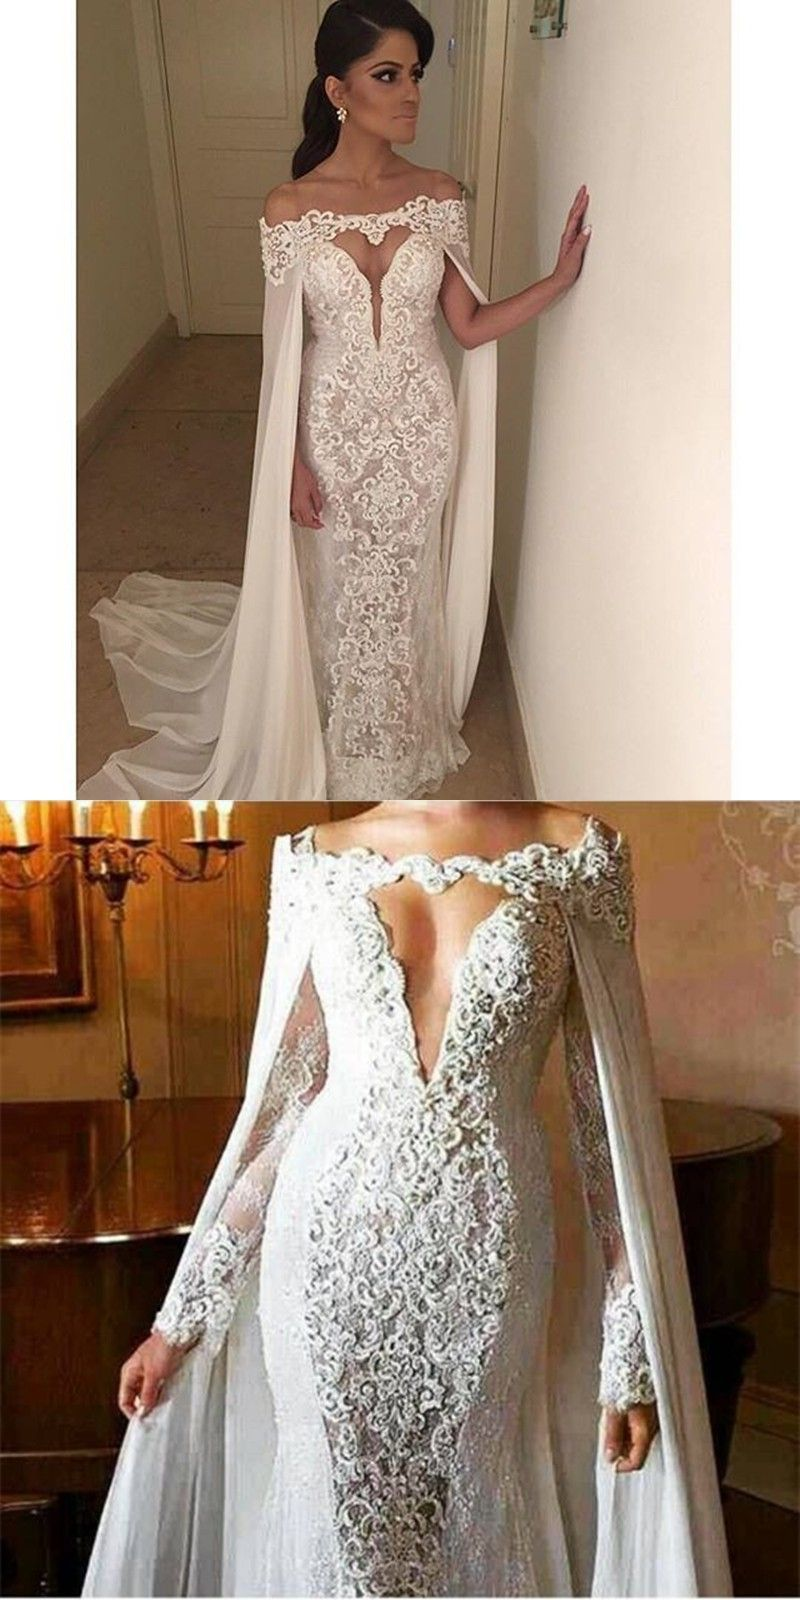 Mermaid wedding dresses with sleeves  Saudi Arabia wedding dress off the shoulder sexy backless wedding